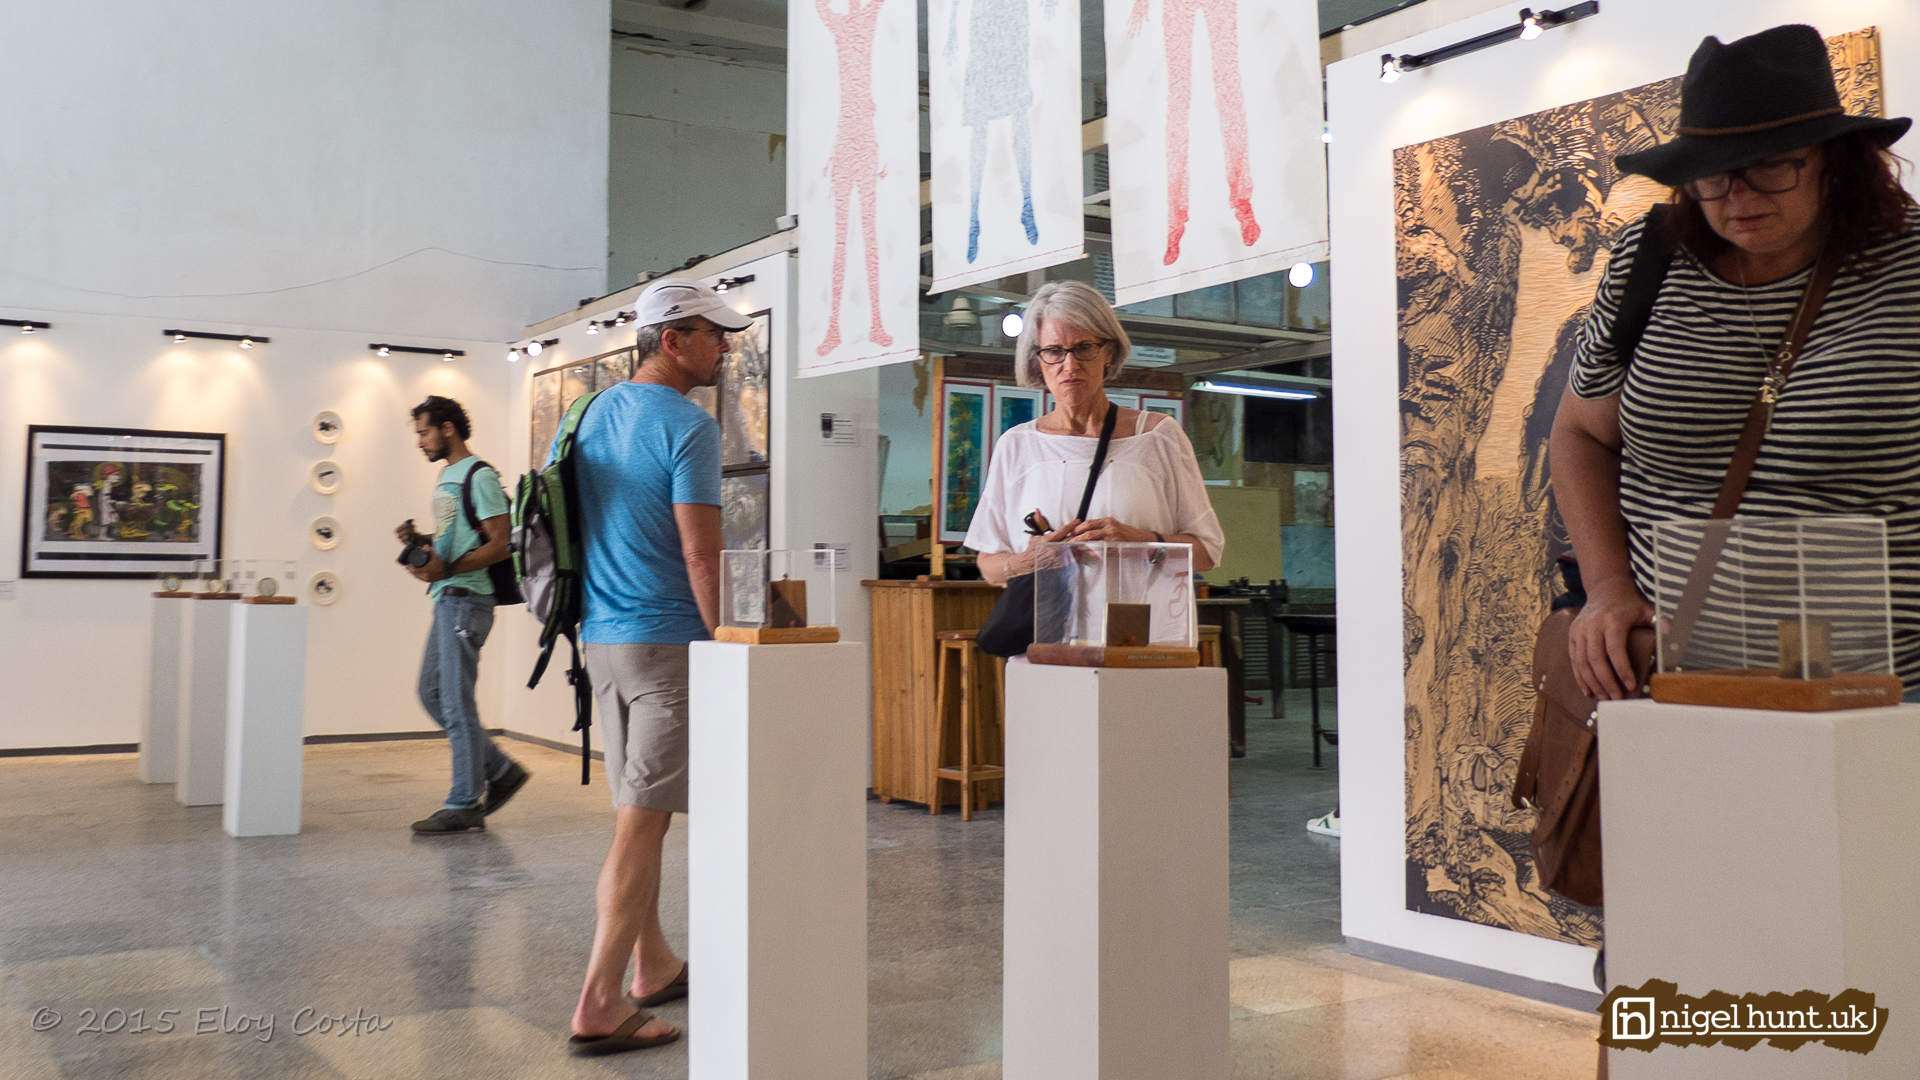 Group Exhibition at the Taller Experimental de la Grafica in Old Havana, Cuba